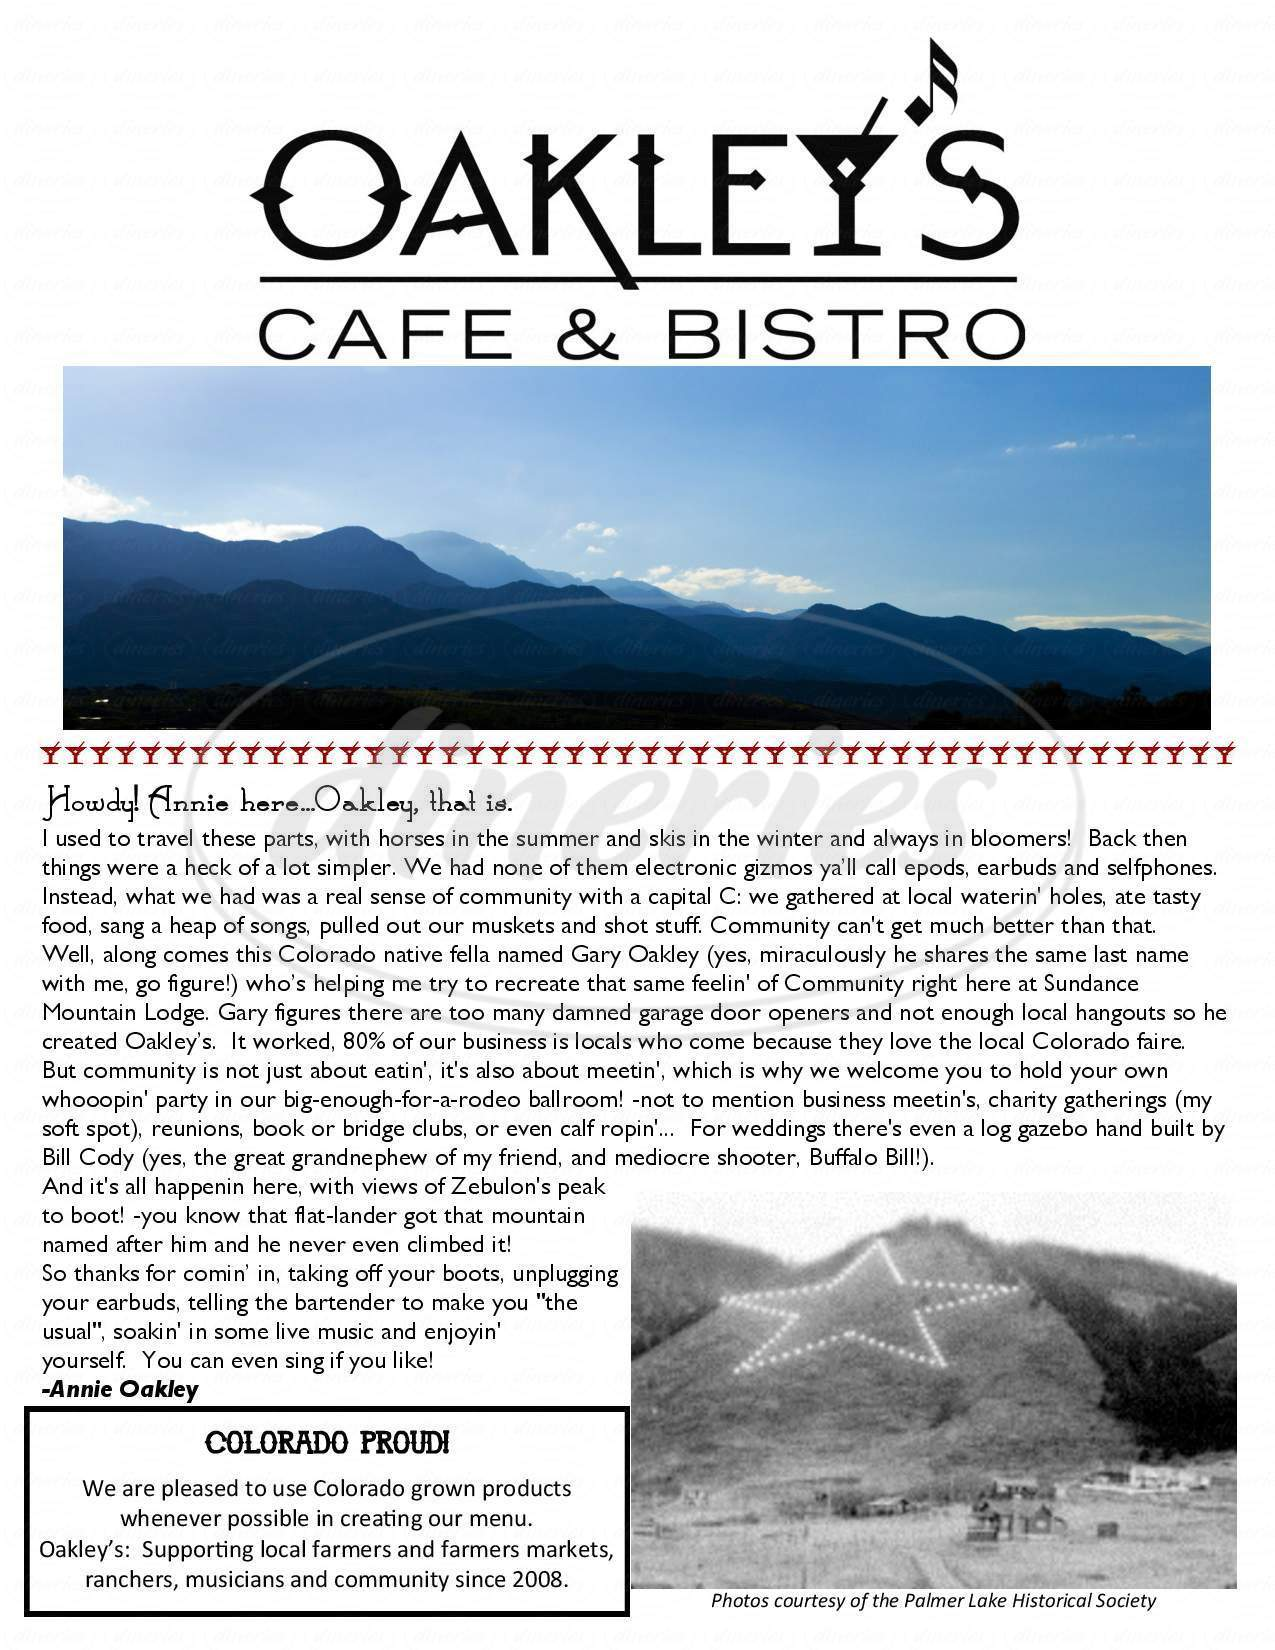 menu for Oakleys Cafe & Bistro